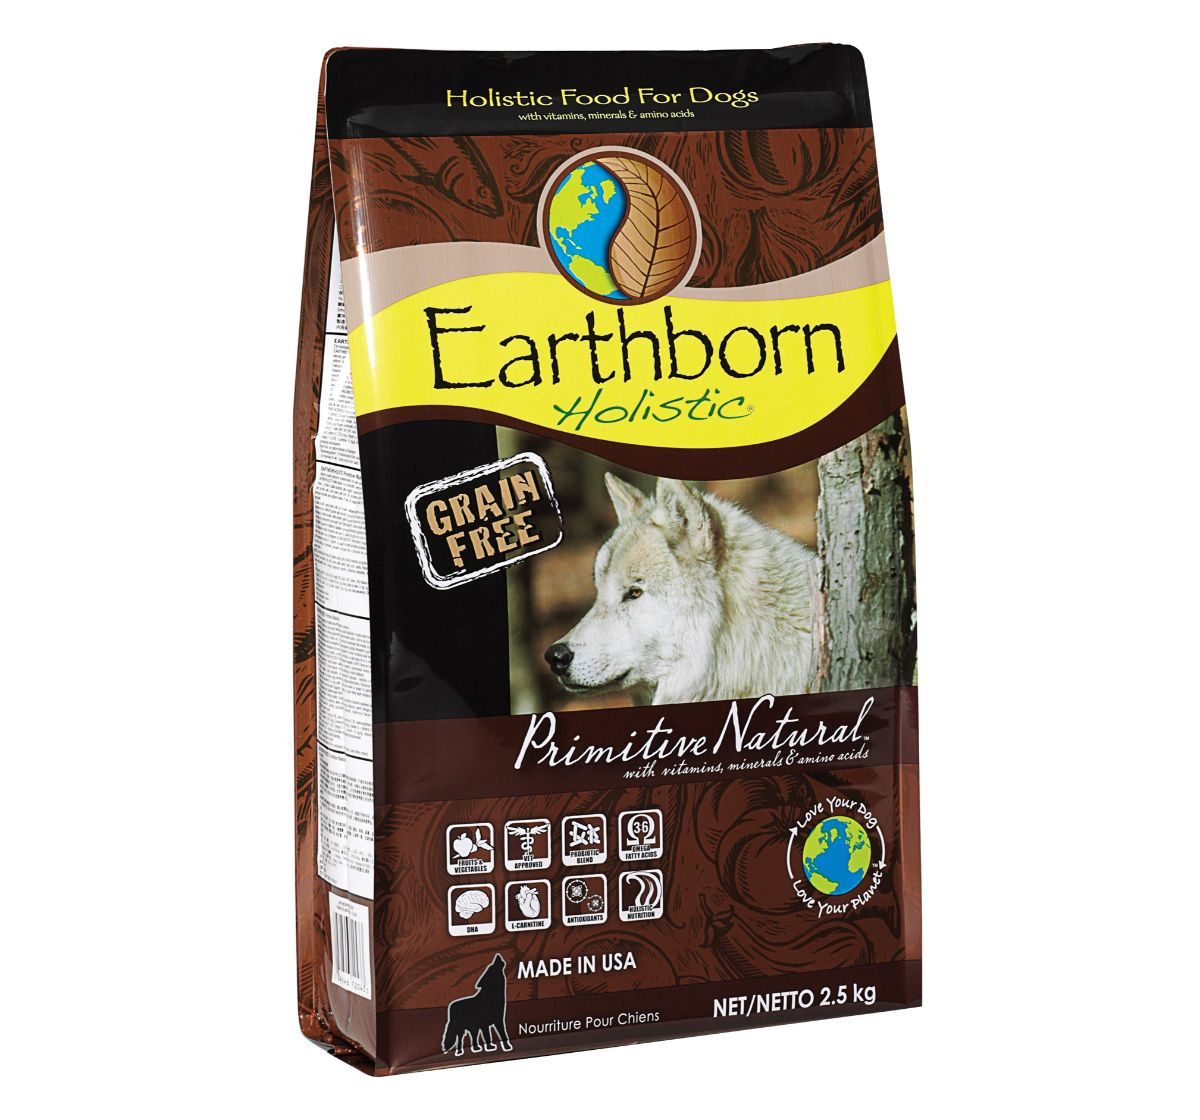 Earthborn Holistic Primitive Grain-Free Dry Dog Food - 2.5 kg